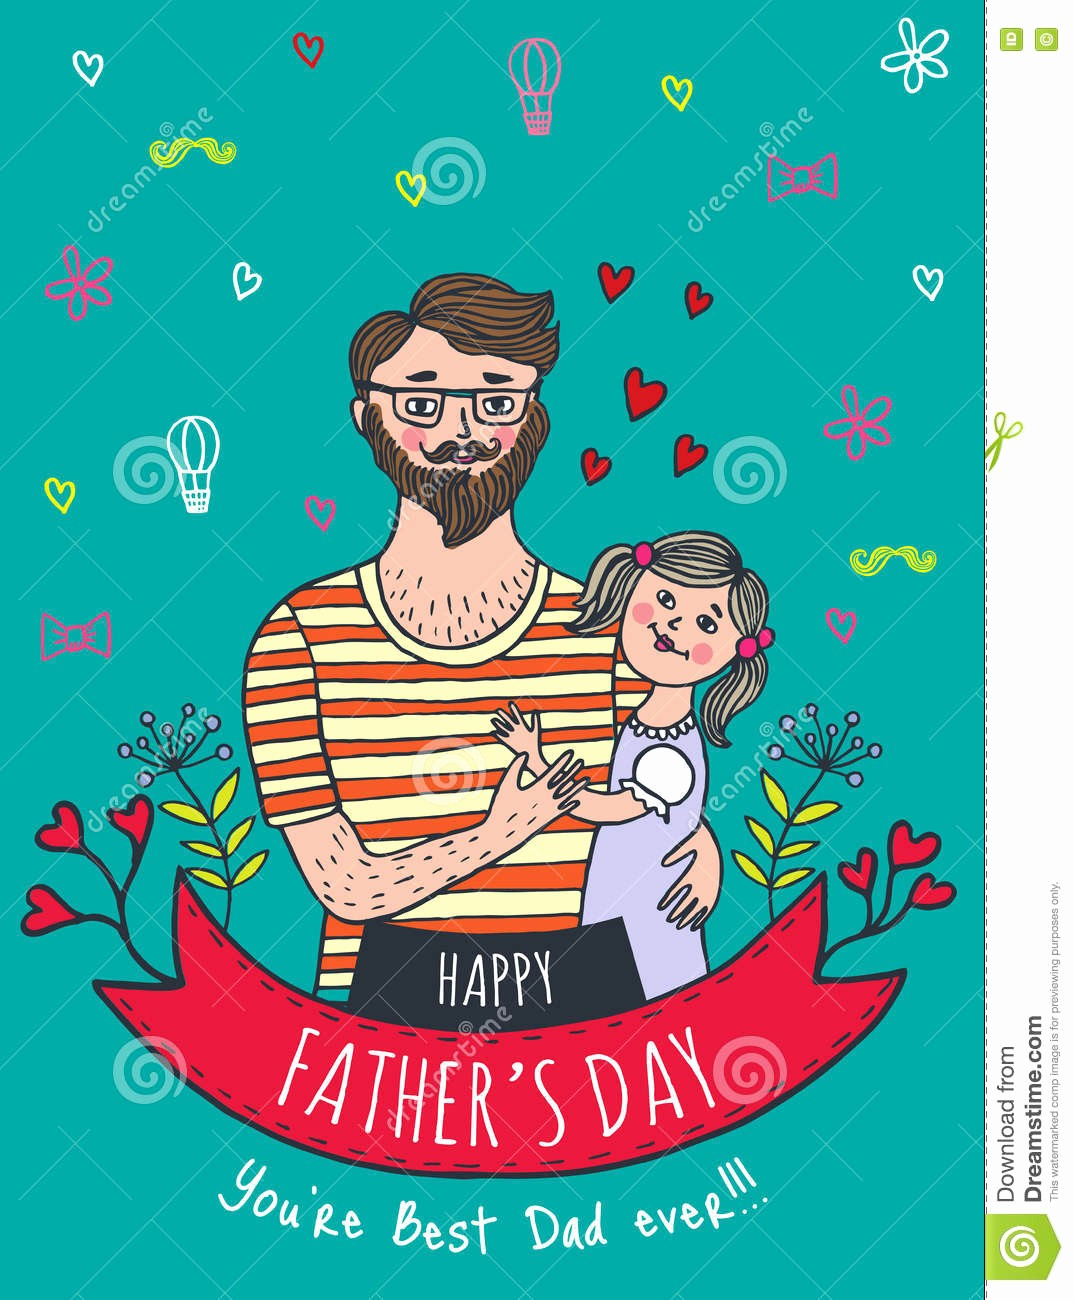 Fathers Day Card From Daughters Best Of Happy Father S Day Card with Dad and Daughter Stock